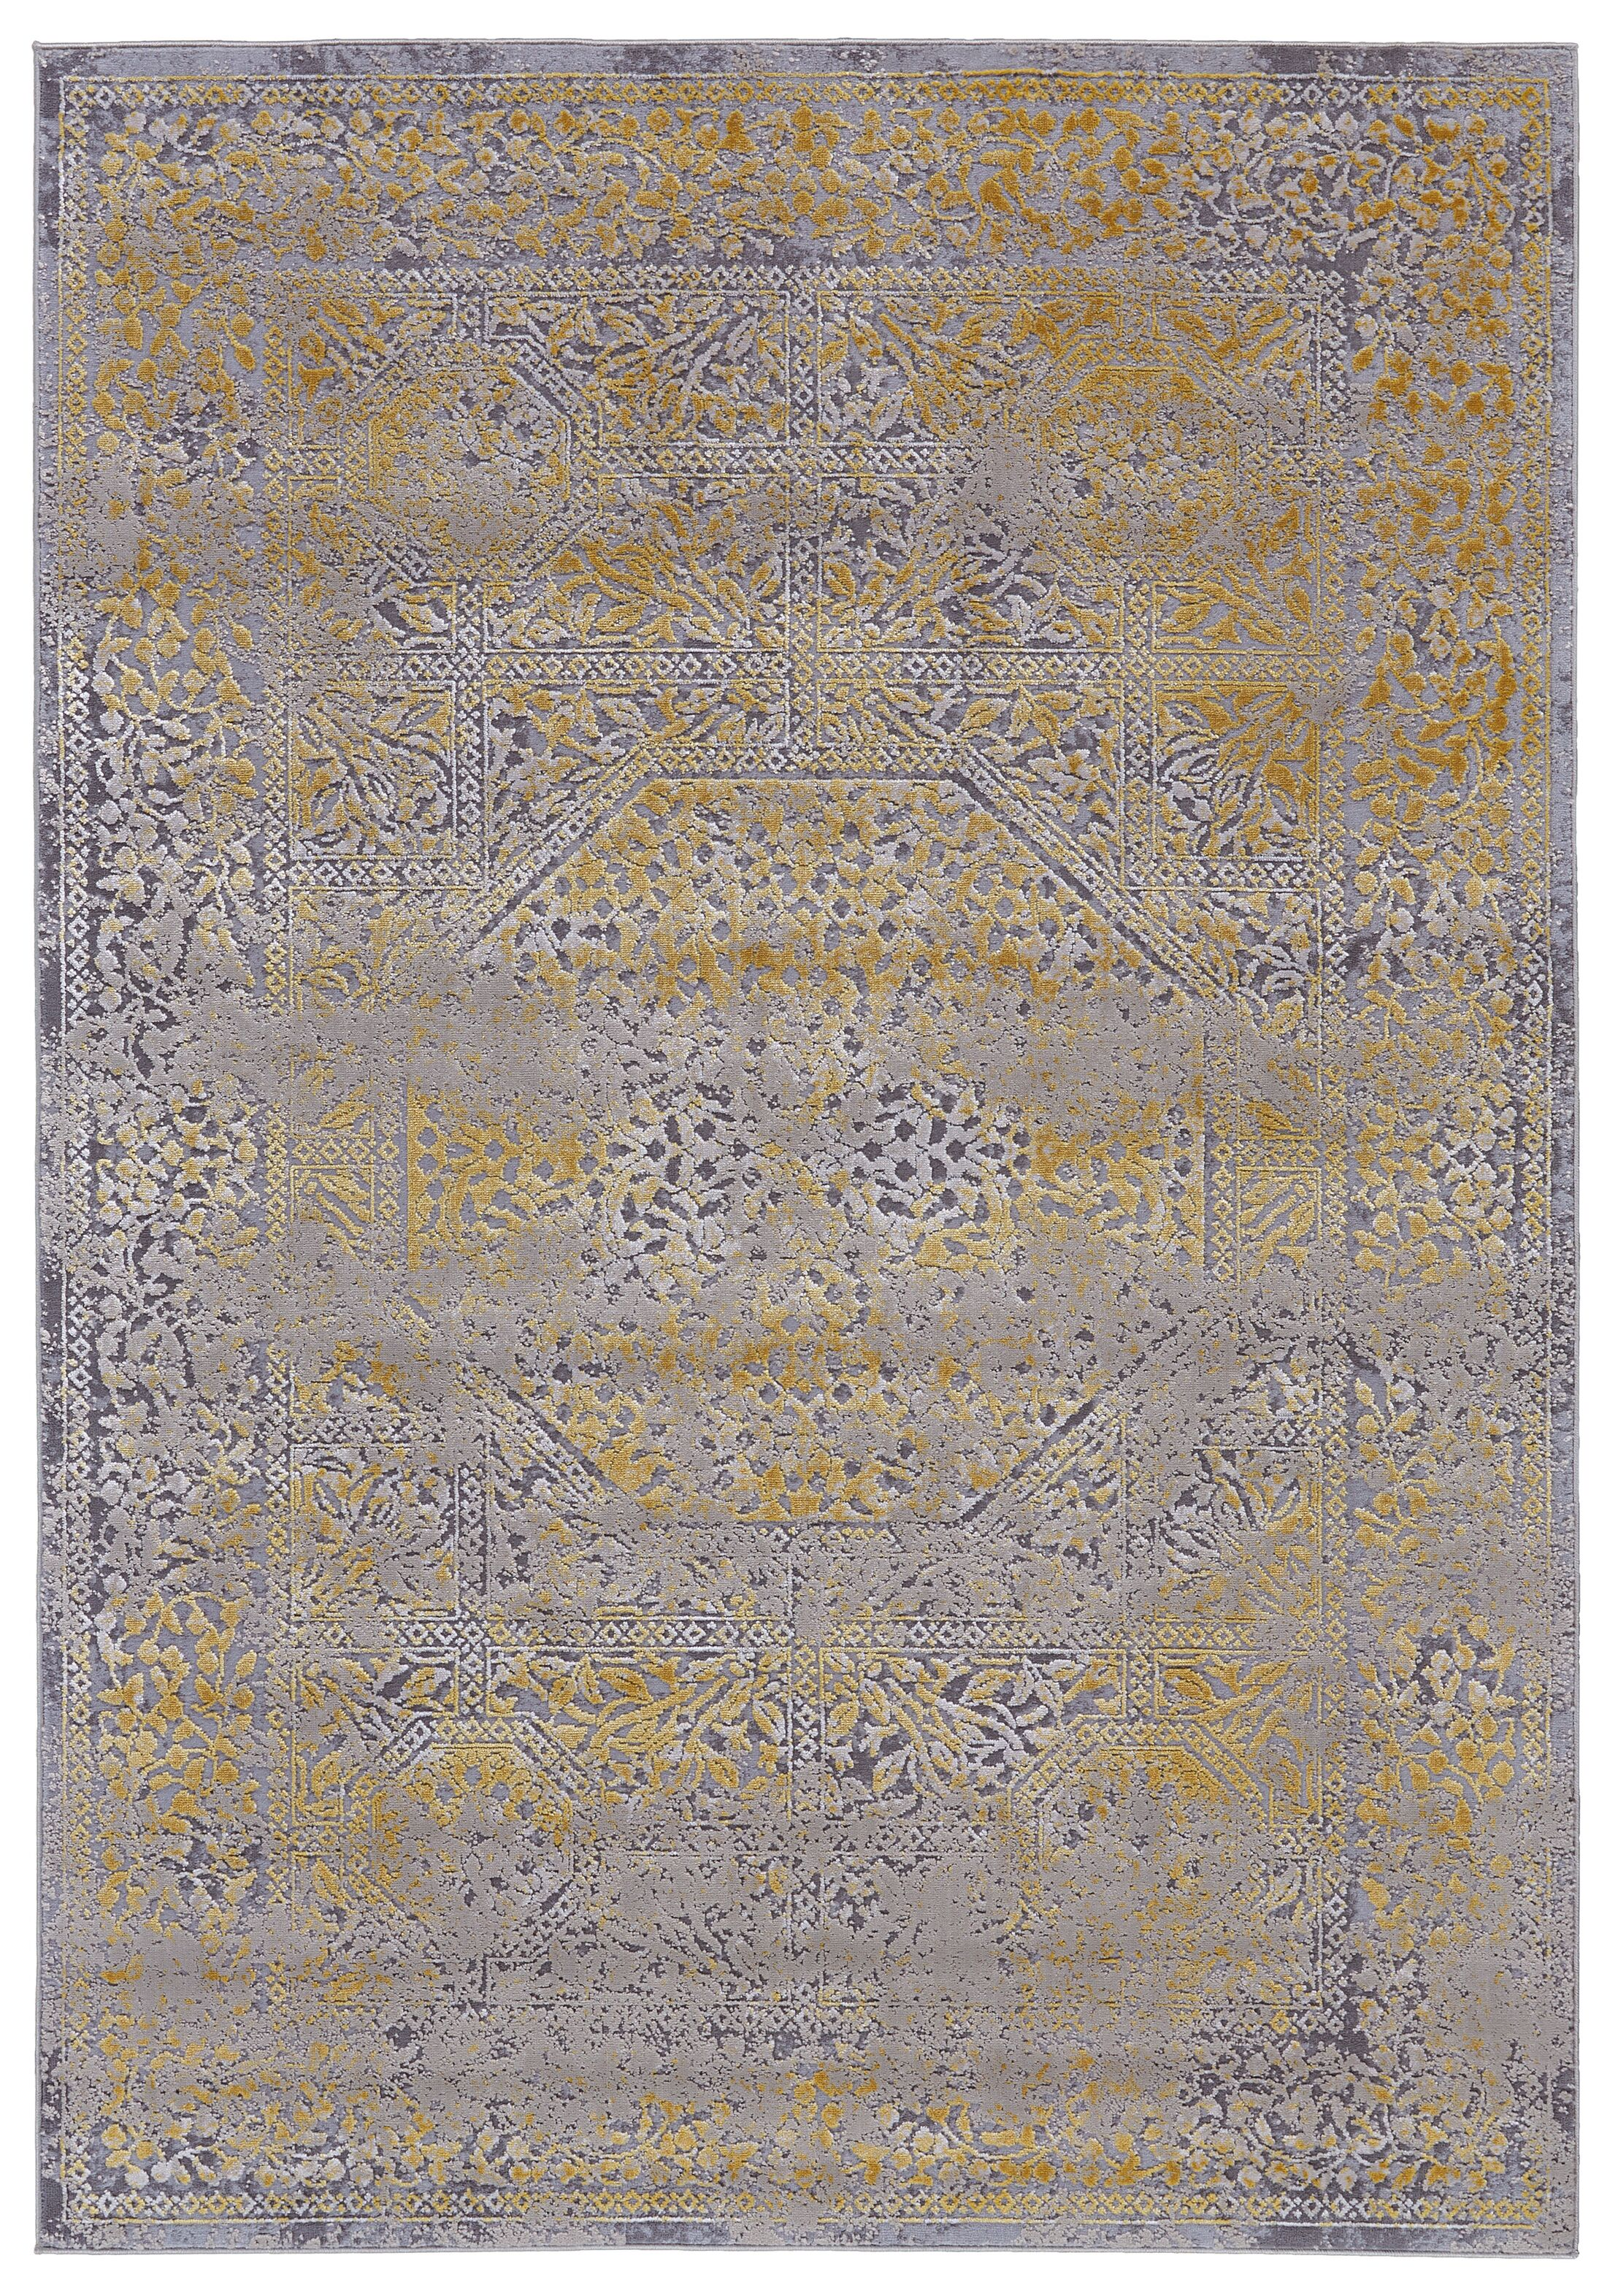 Reichenbach Gold/Sand Area Rug Rug Size: Rectangle 5' x 8'